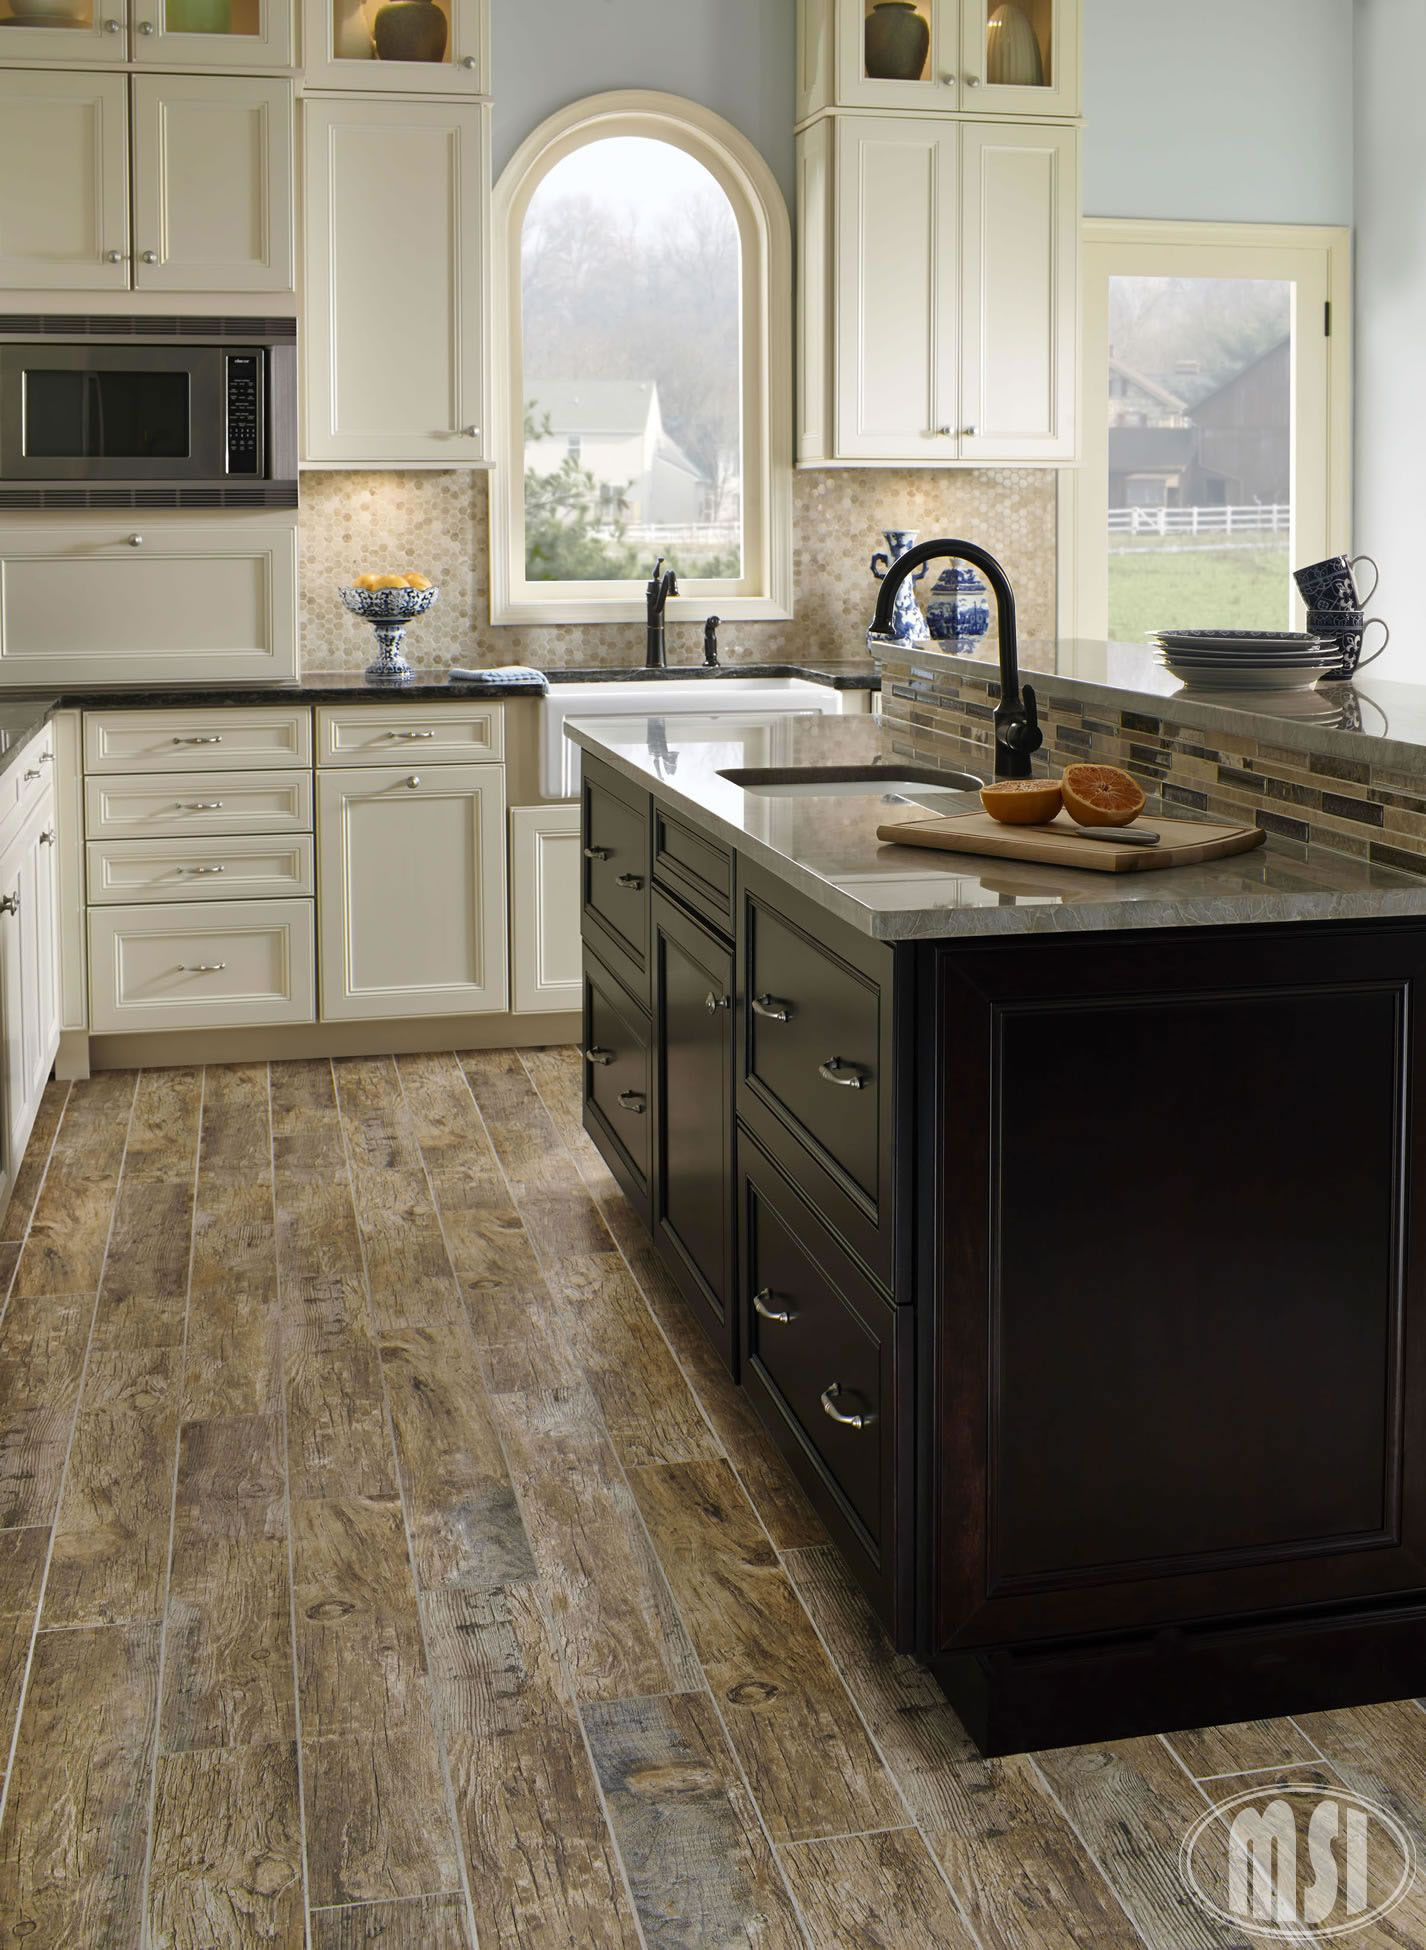 Porcelain Floor Kitchen Perfect Kitchen Floor No Need To Worry About Real Wood Floors